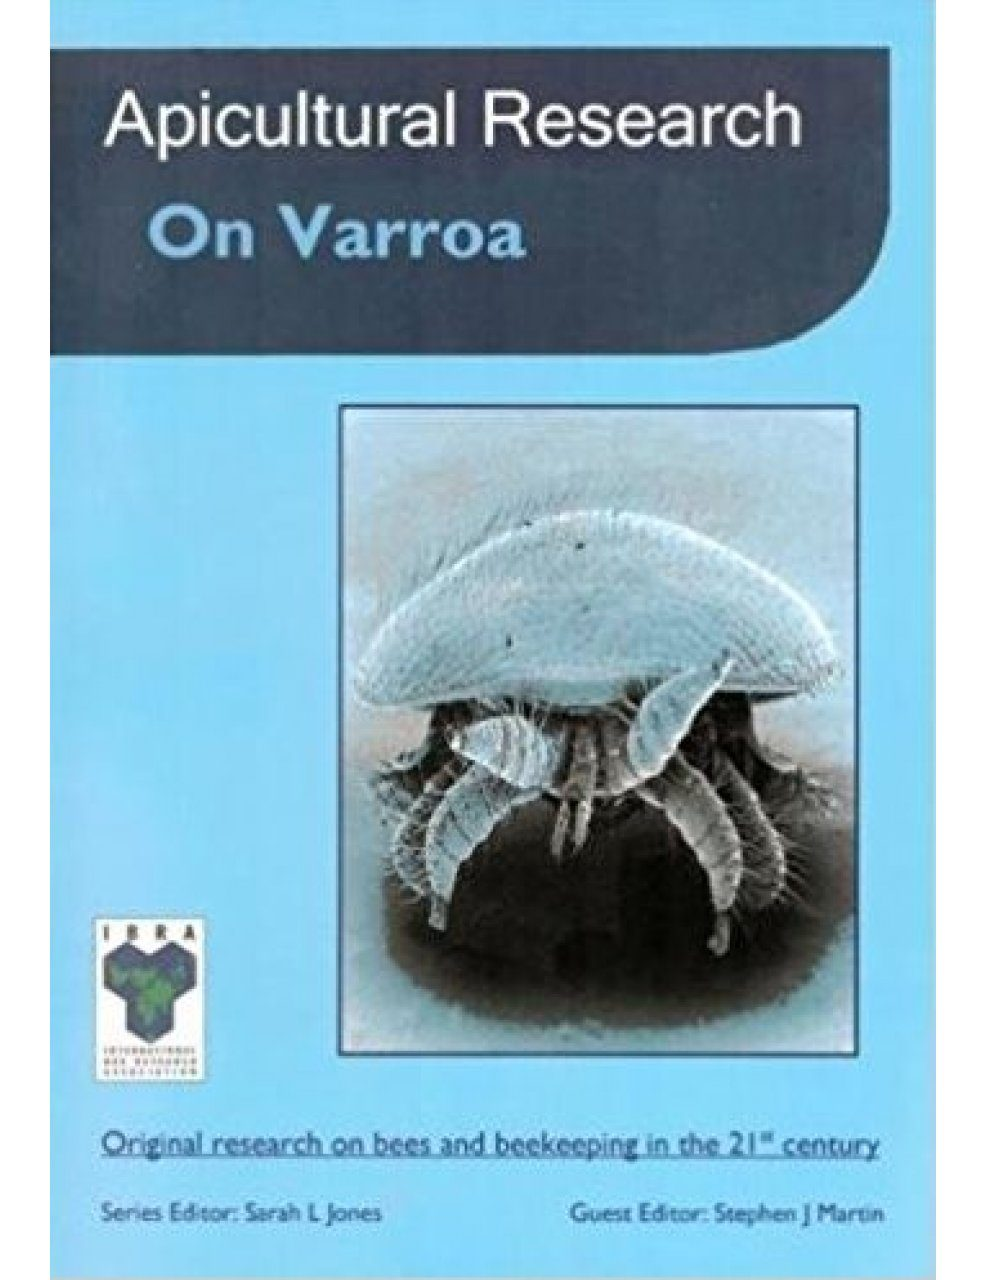 Apicultural Research on Varroa